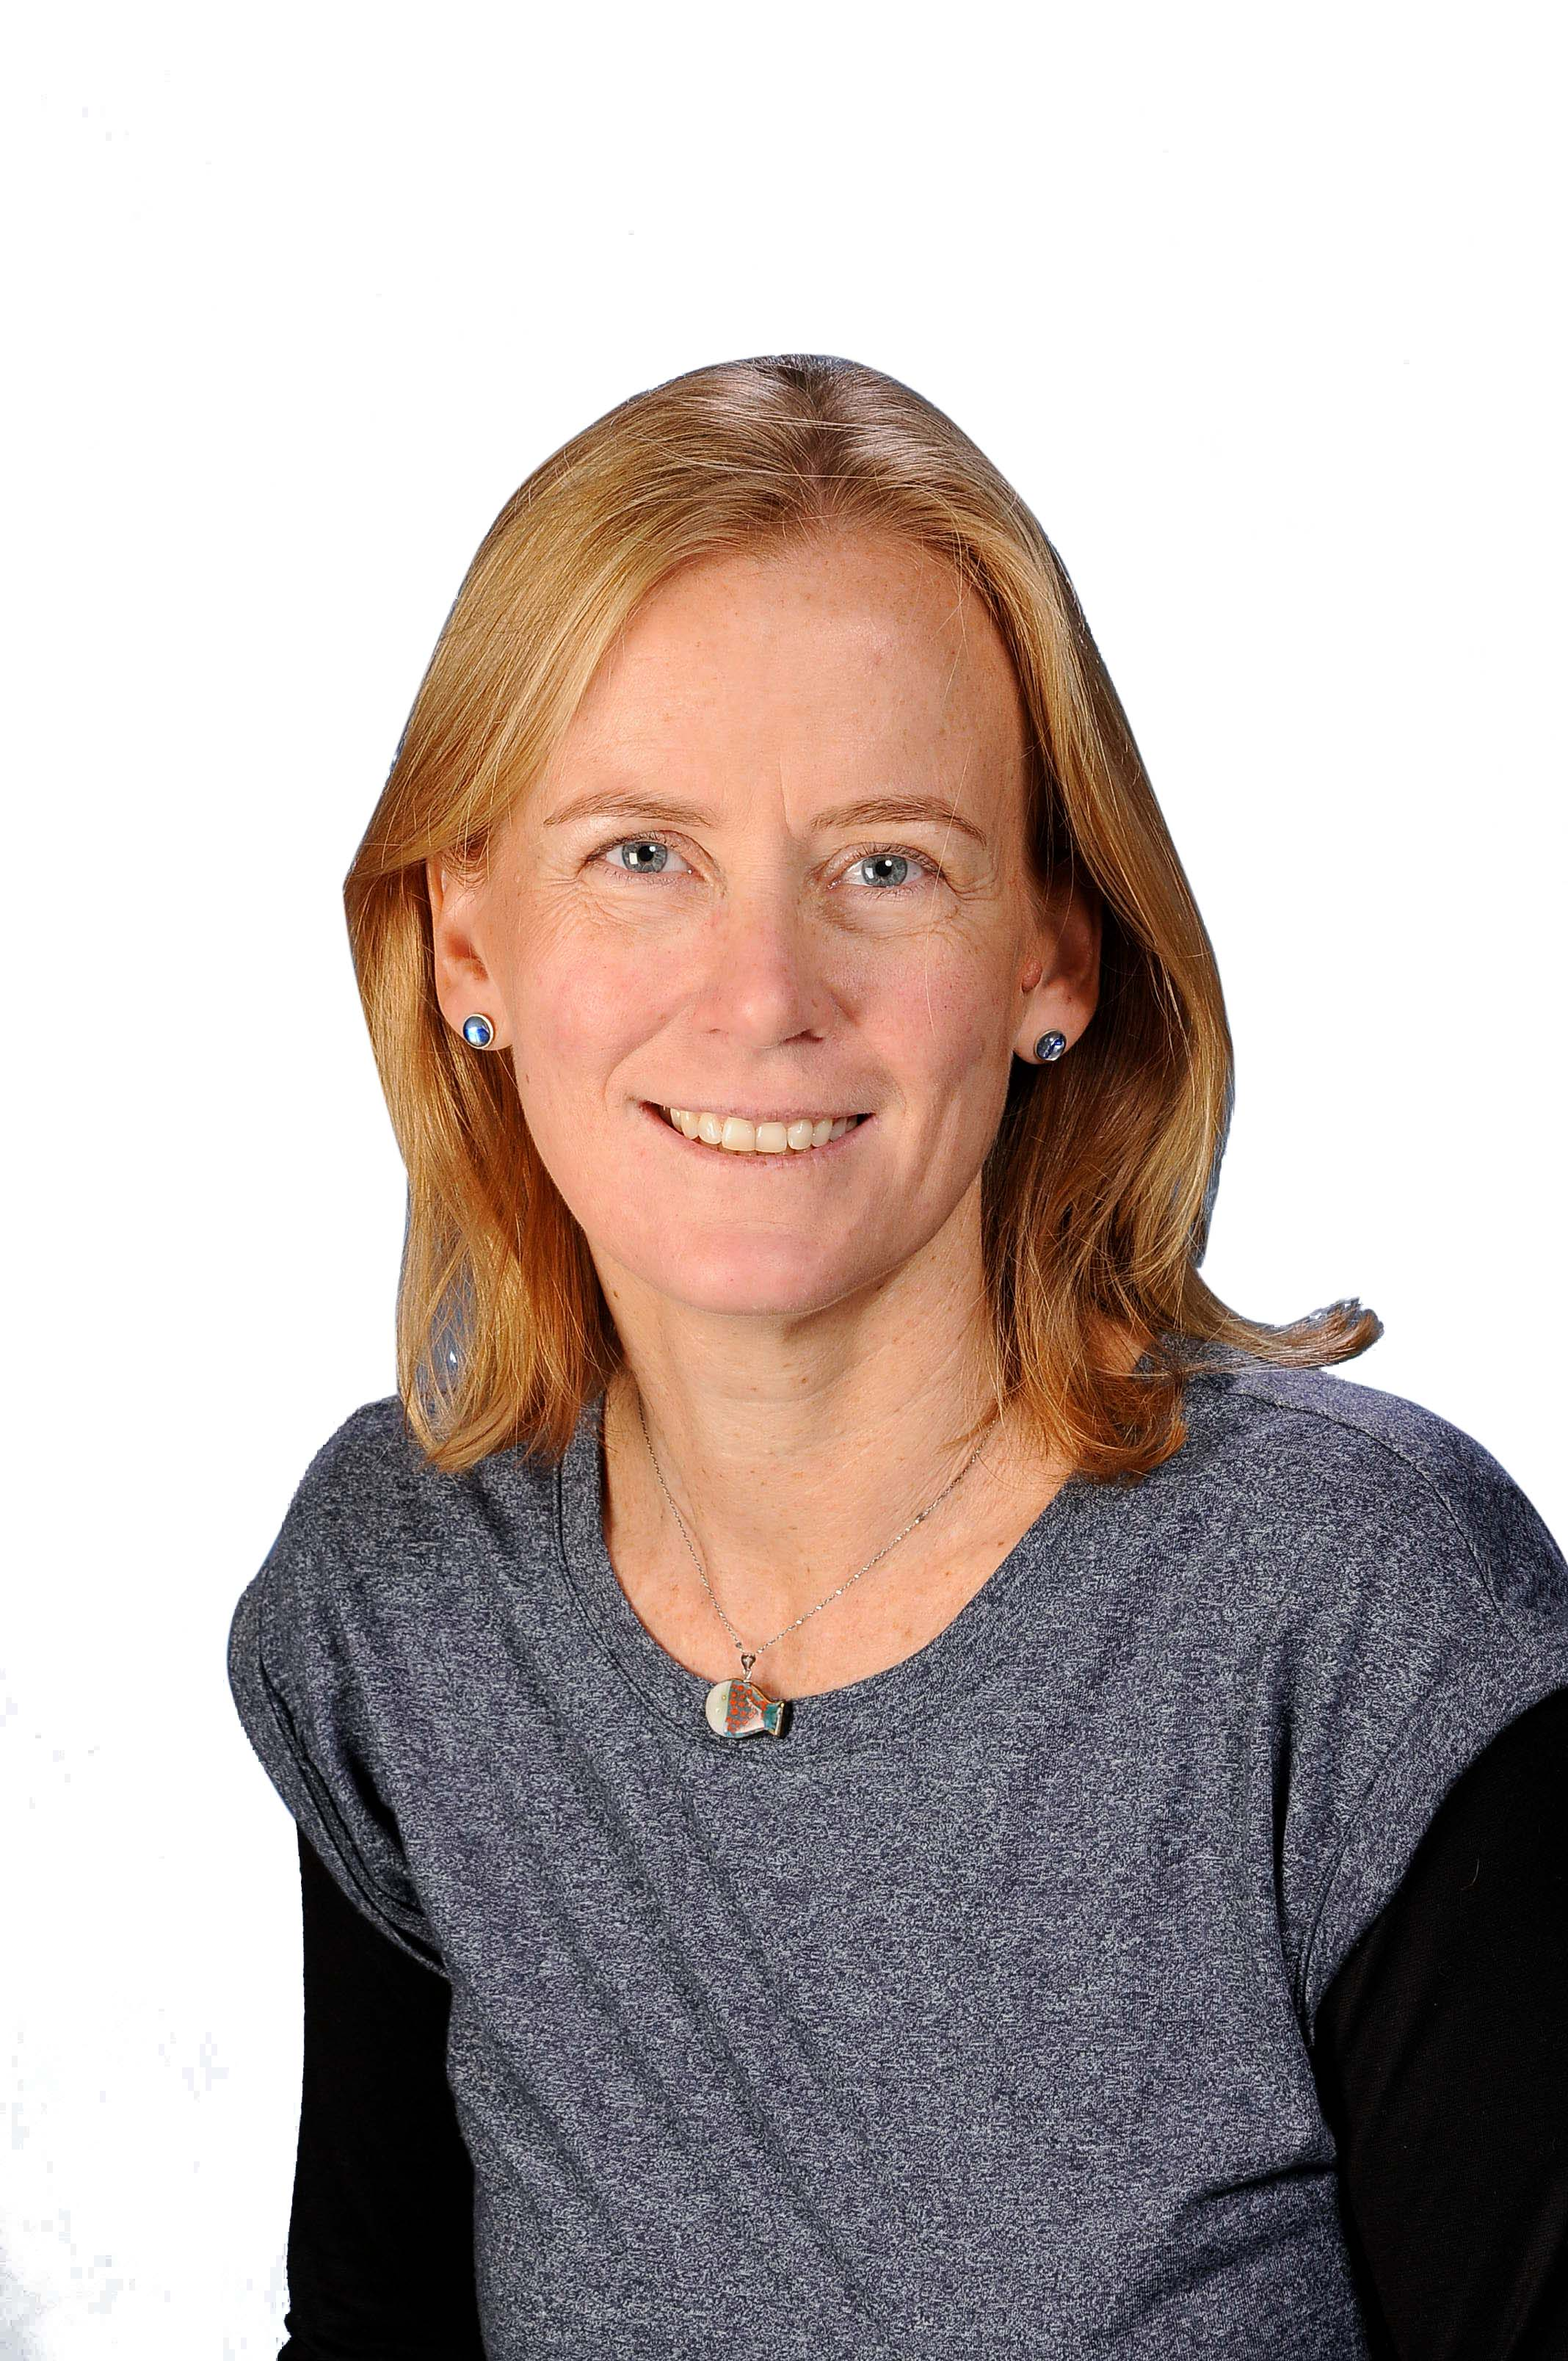 Sarah Partridge, Head of Early Years